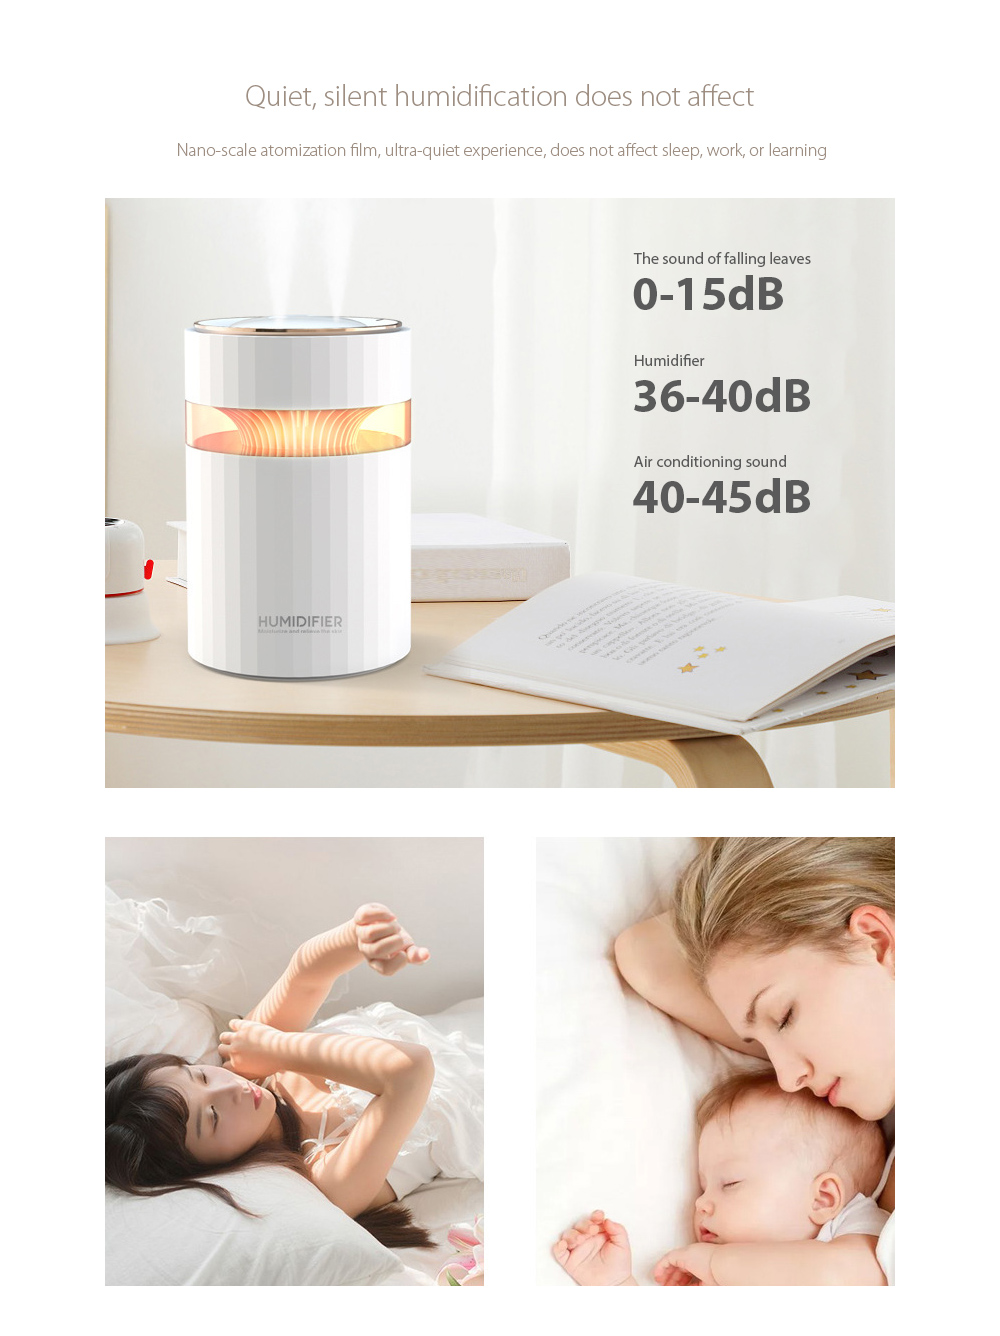 M207 Negative Ion Dual Port Humidifier Quiet, silent humidification does not affect